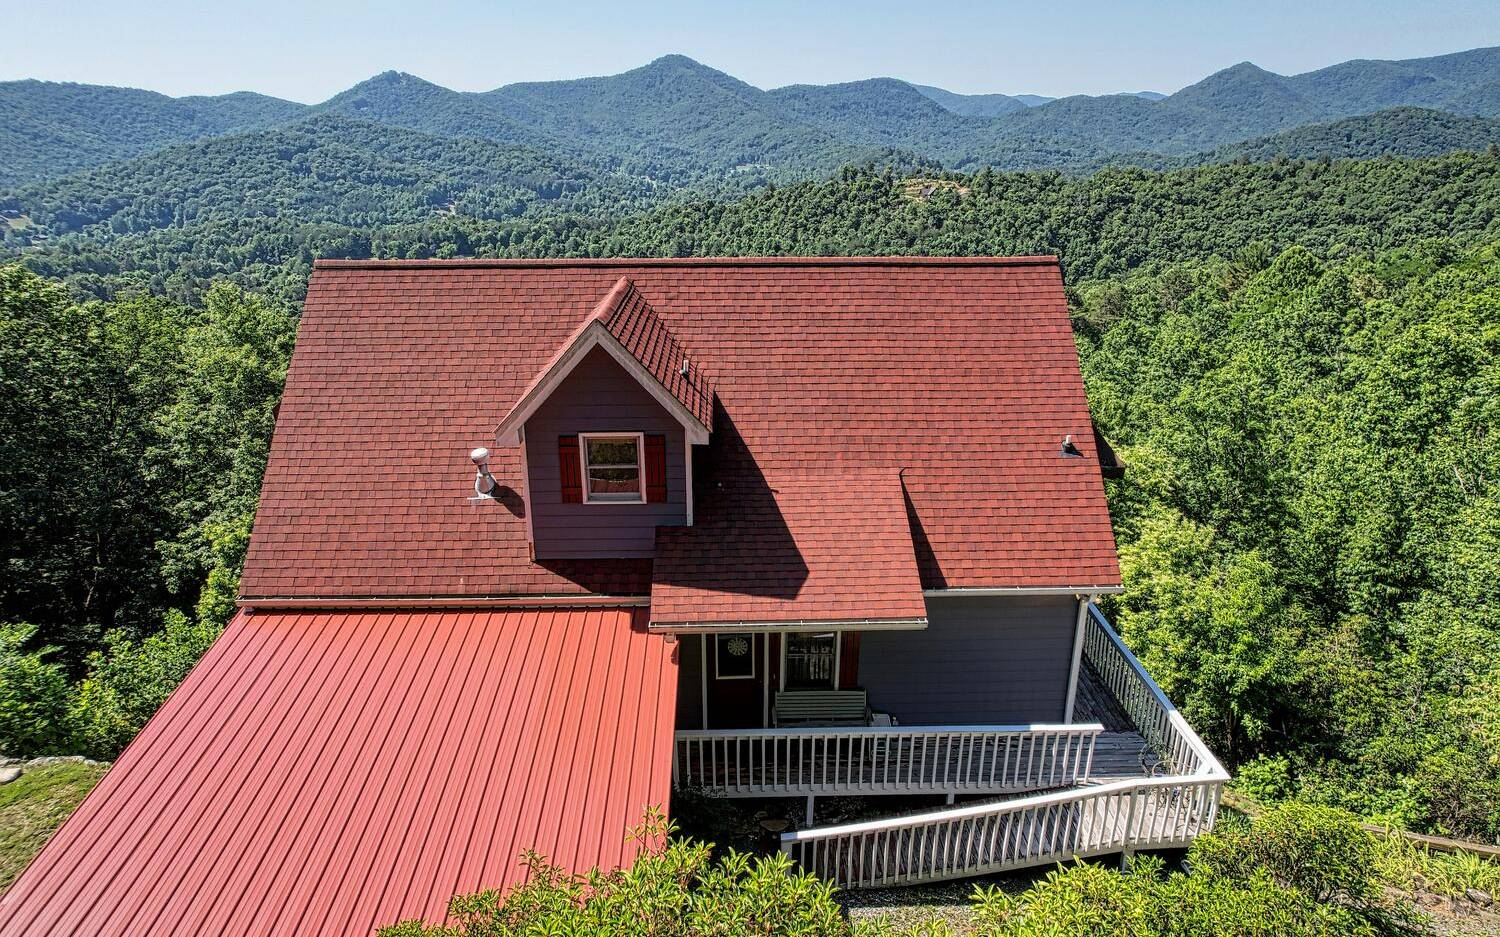 1900  IVY MOUNTAIN RD.